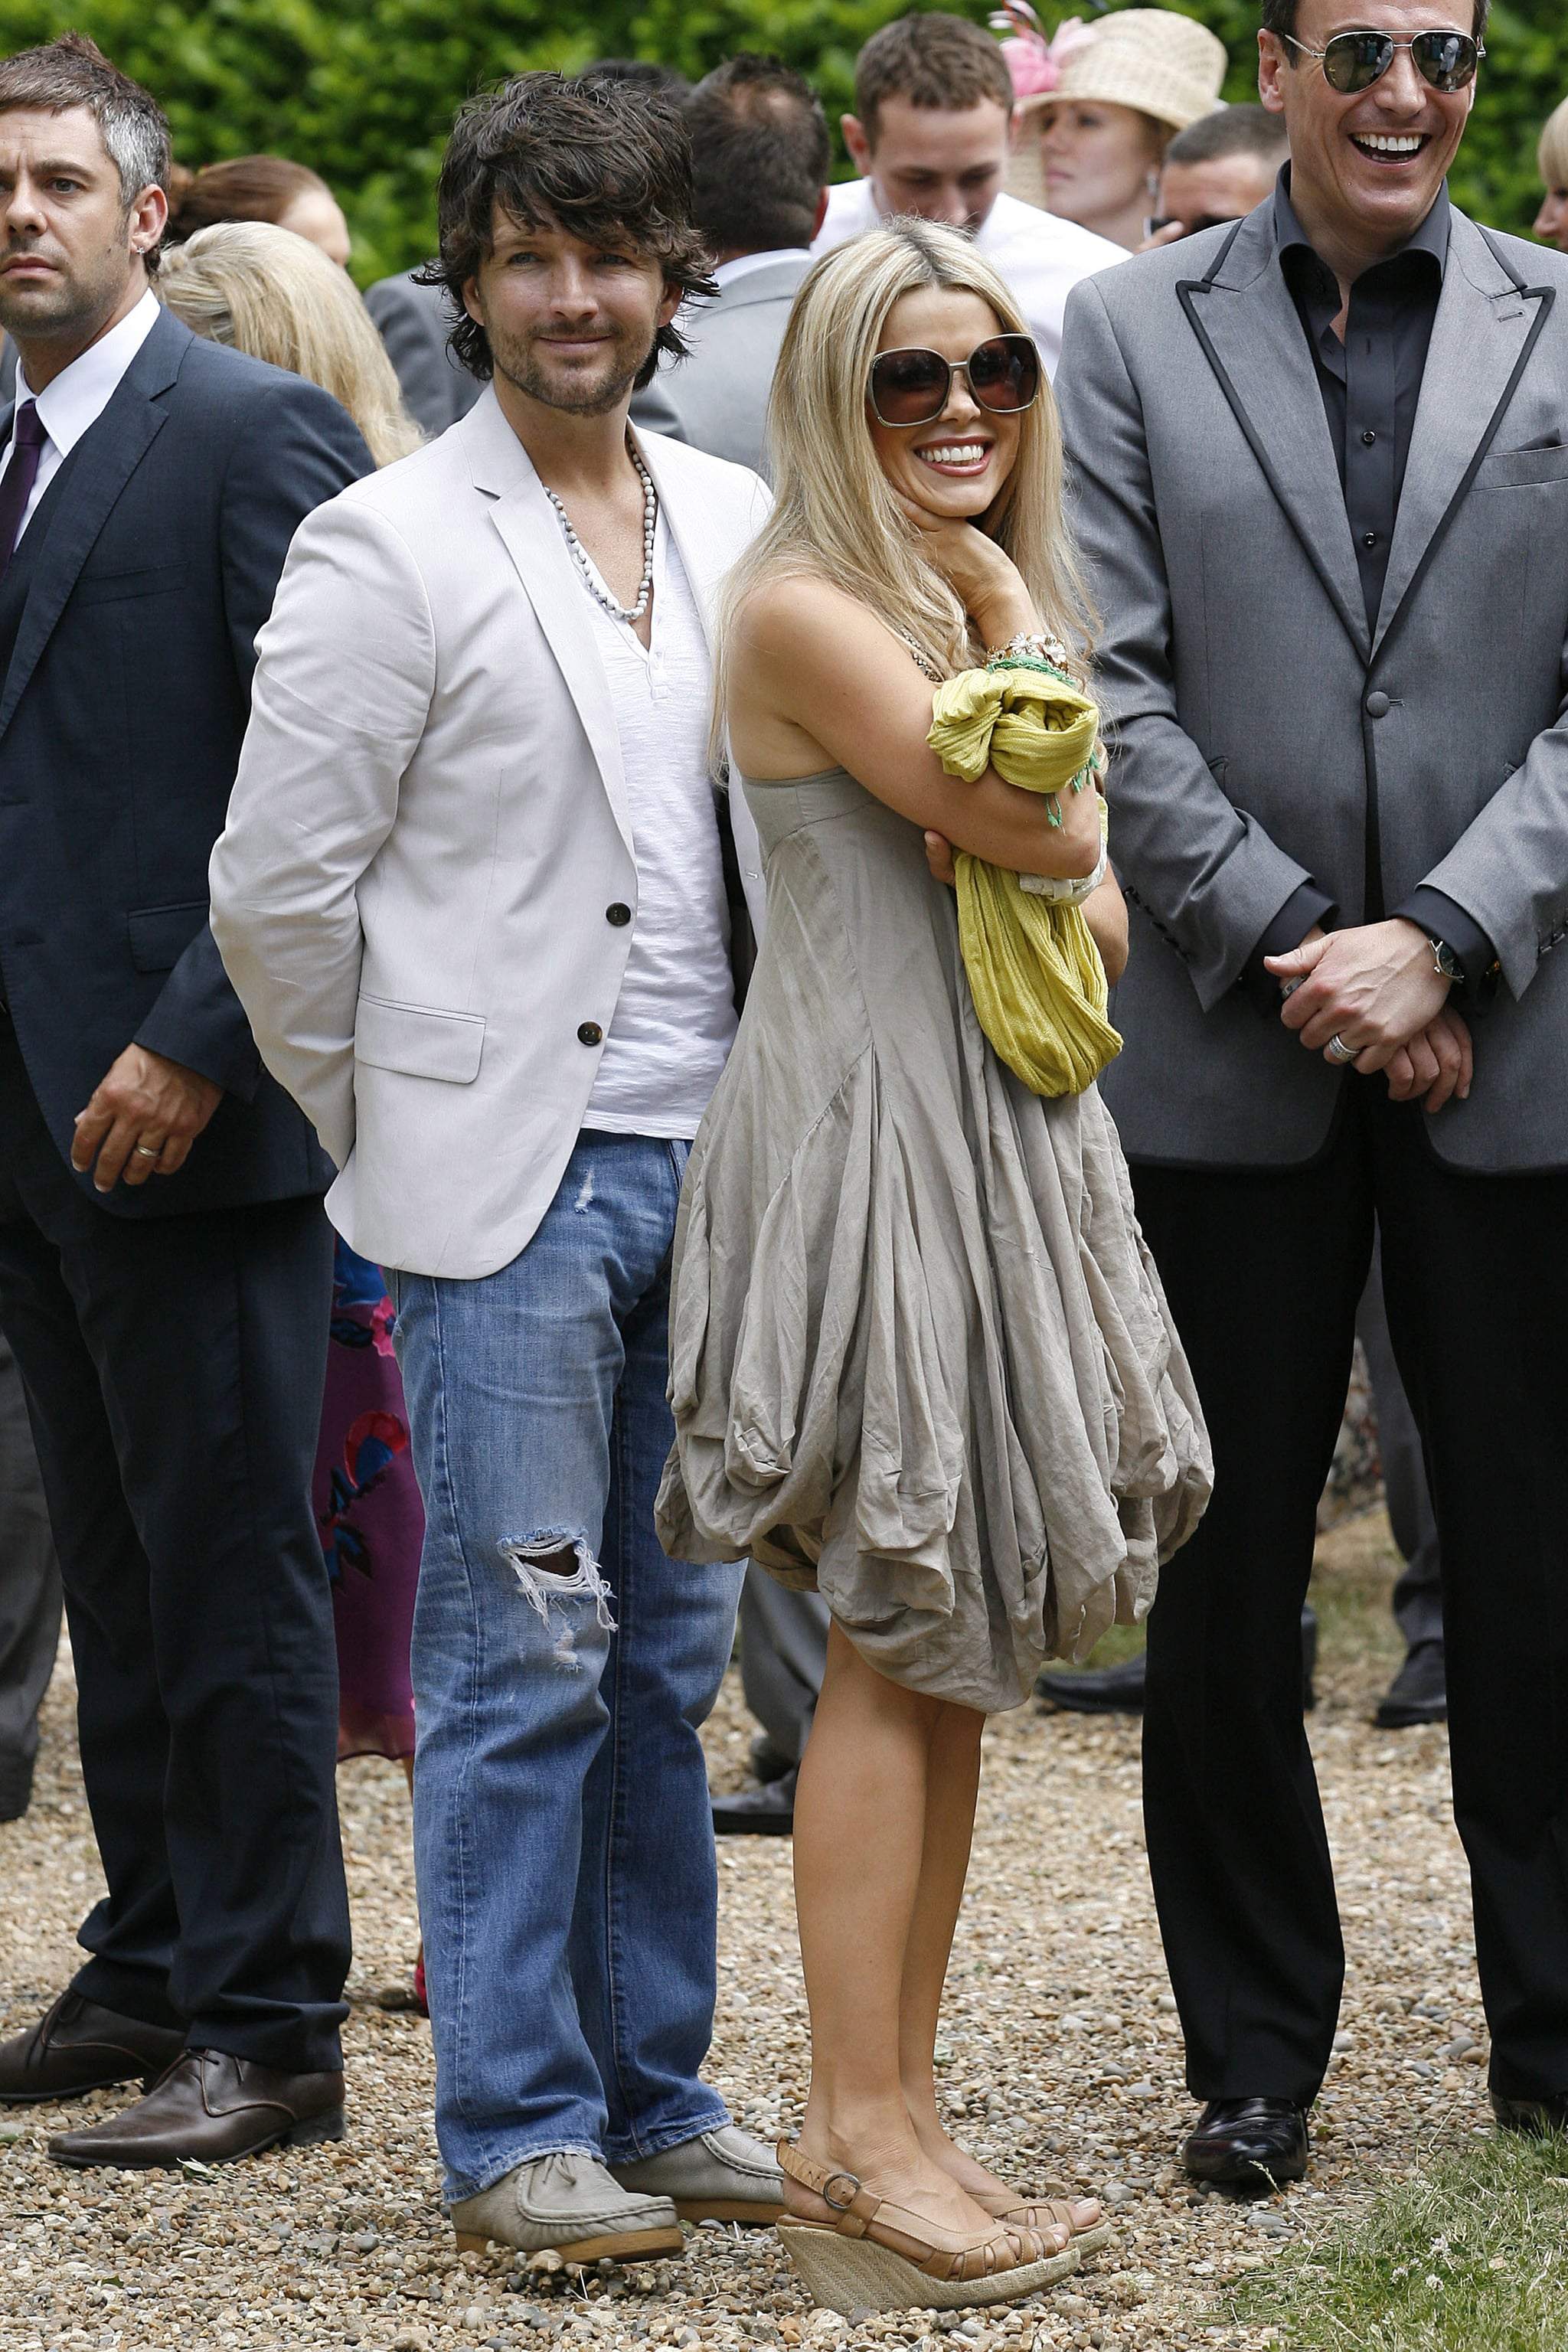 pictures of katie price and alex reid uk wedding blessing